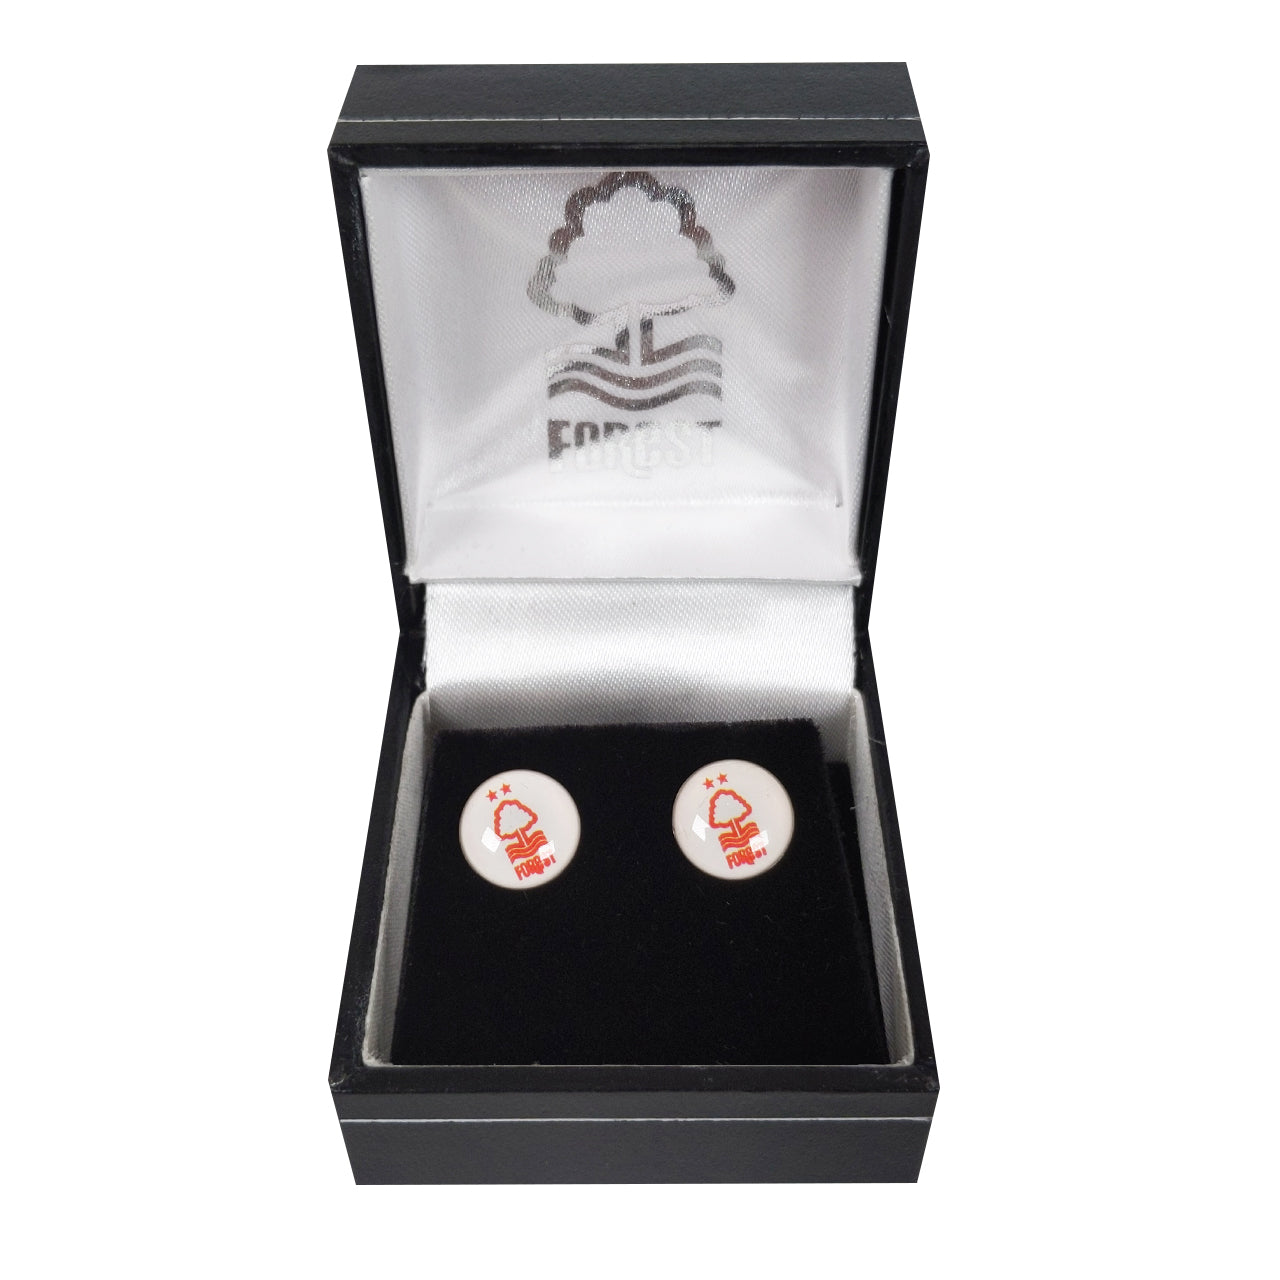 NFFC Colour Crest Earings - Pair - Nottingham Forest